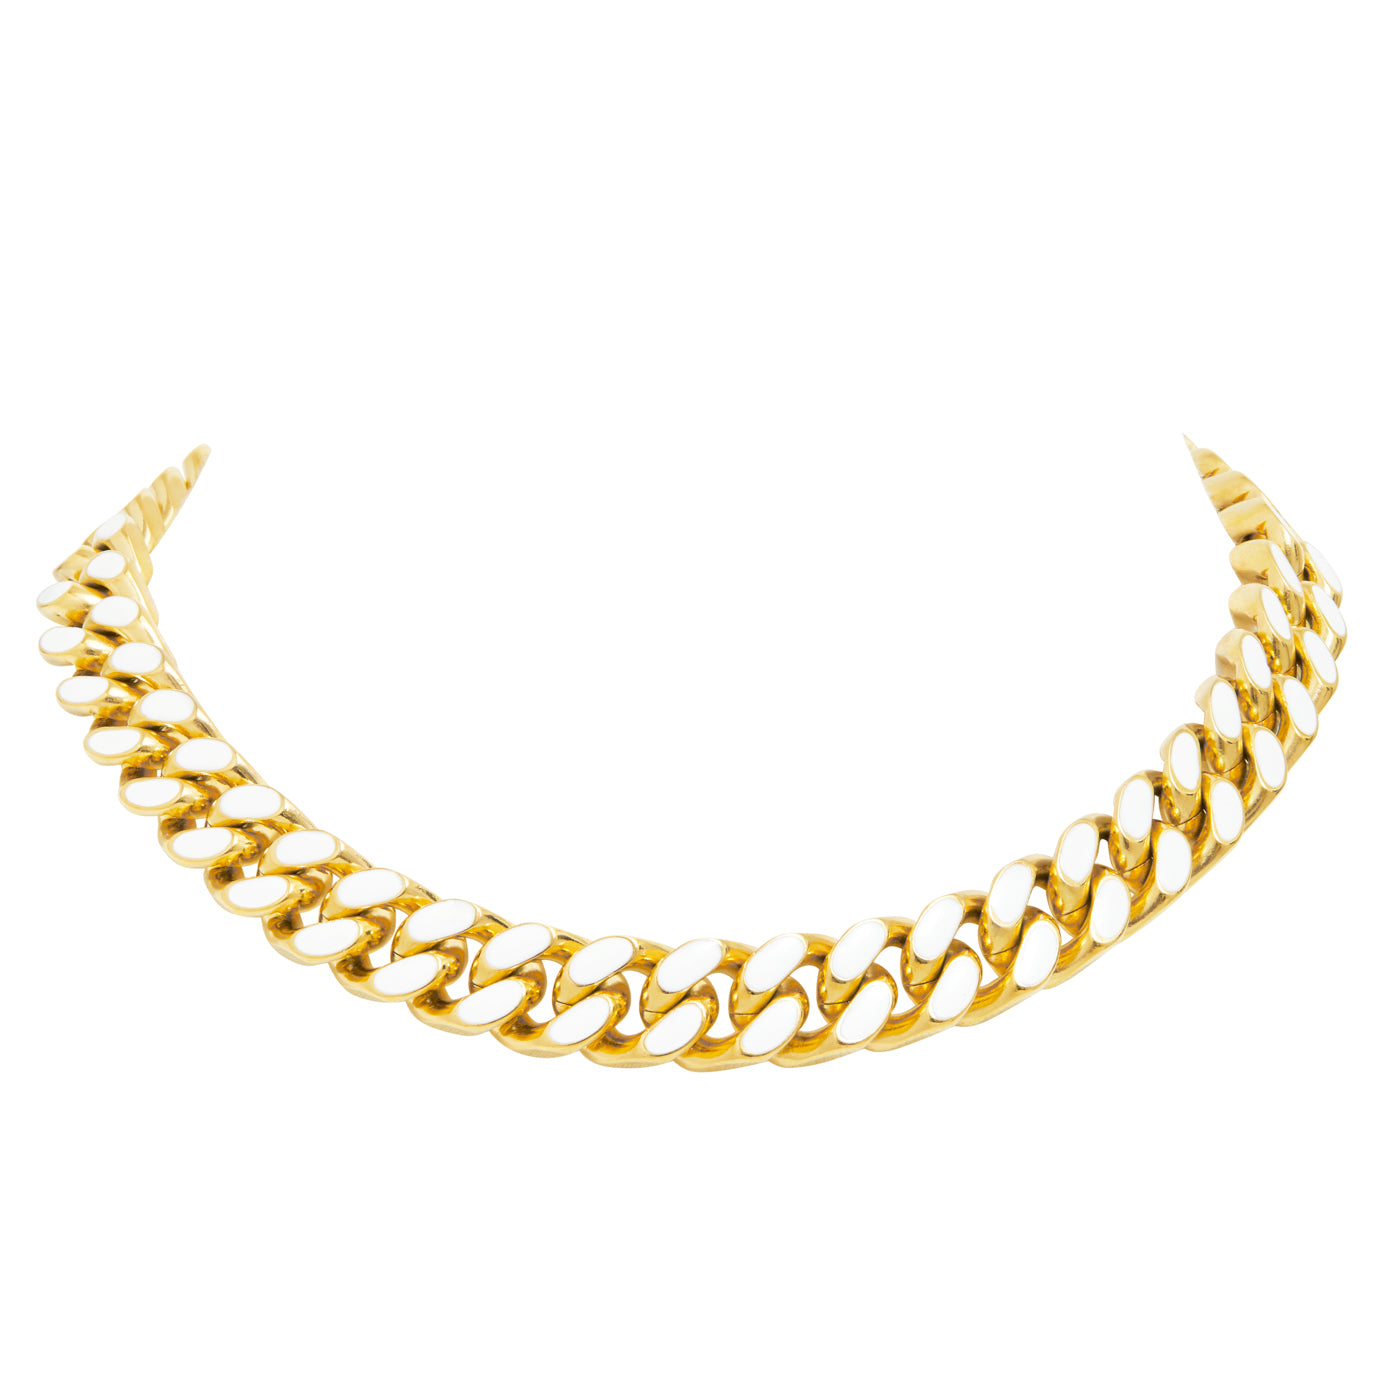 ARMURE ENAMEL CURB CHAIN COLLAR NECKLACE - GOLD/WHITE